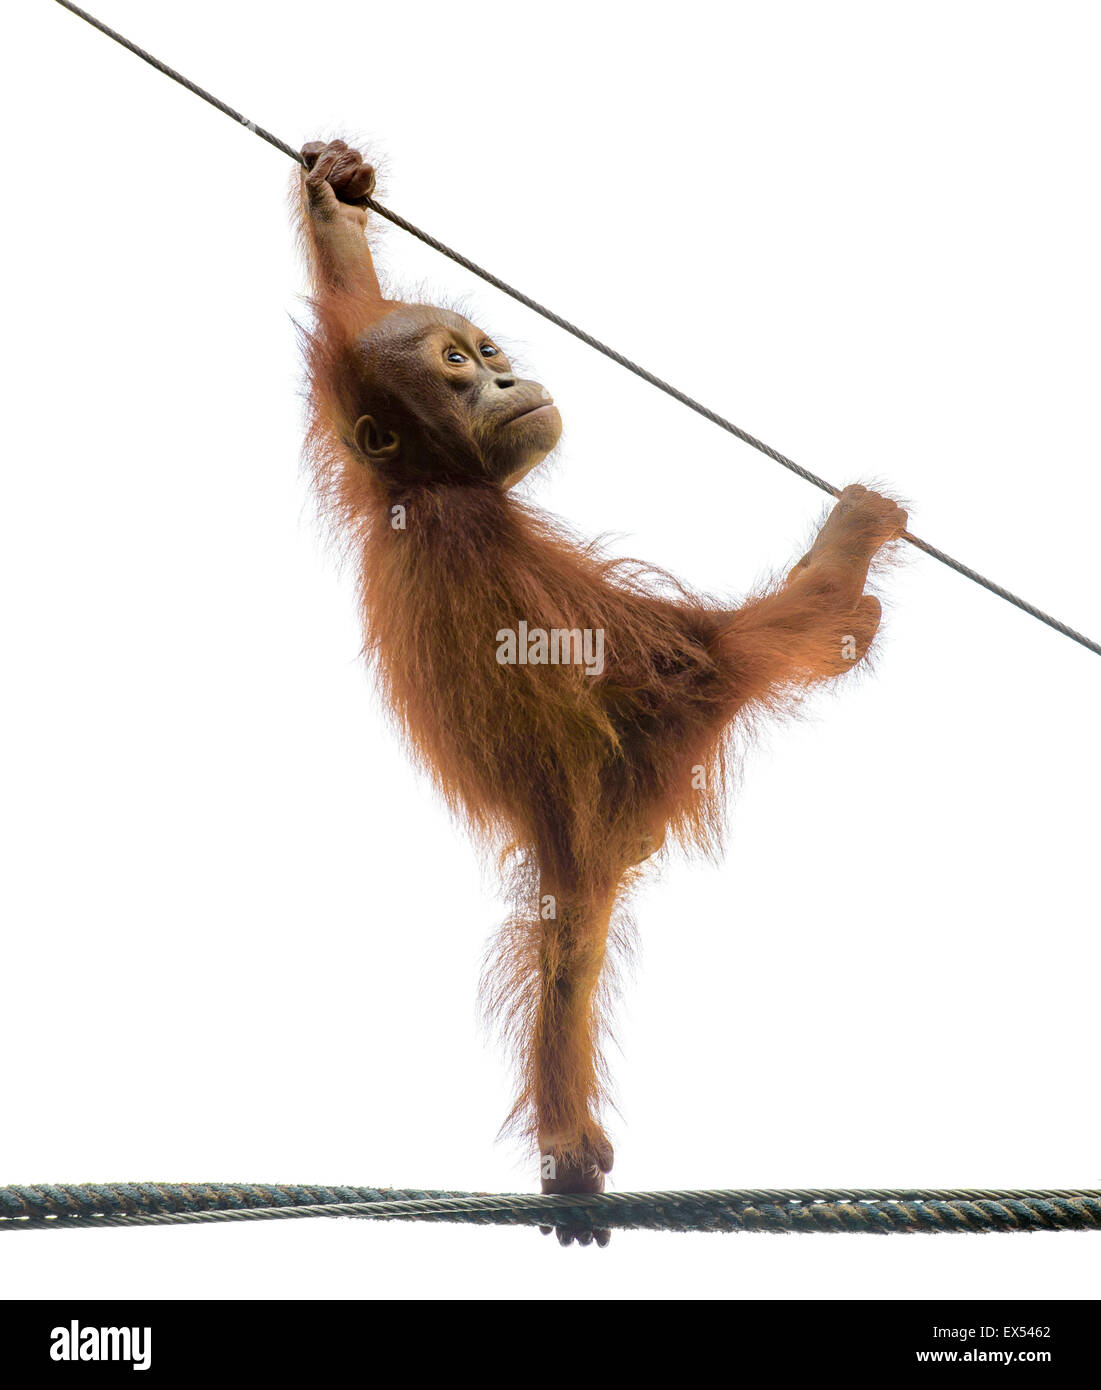 Baby orangutan standing on a rope in a funny pose, isolated on white - Stock Image